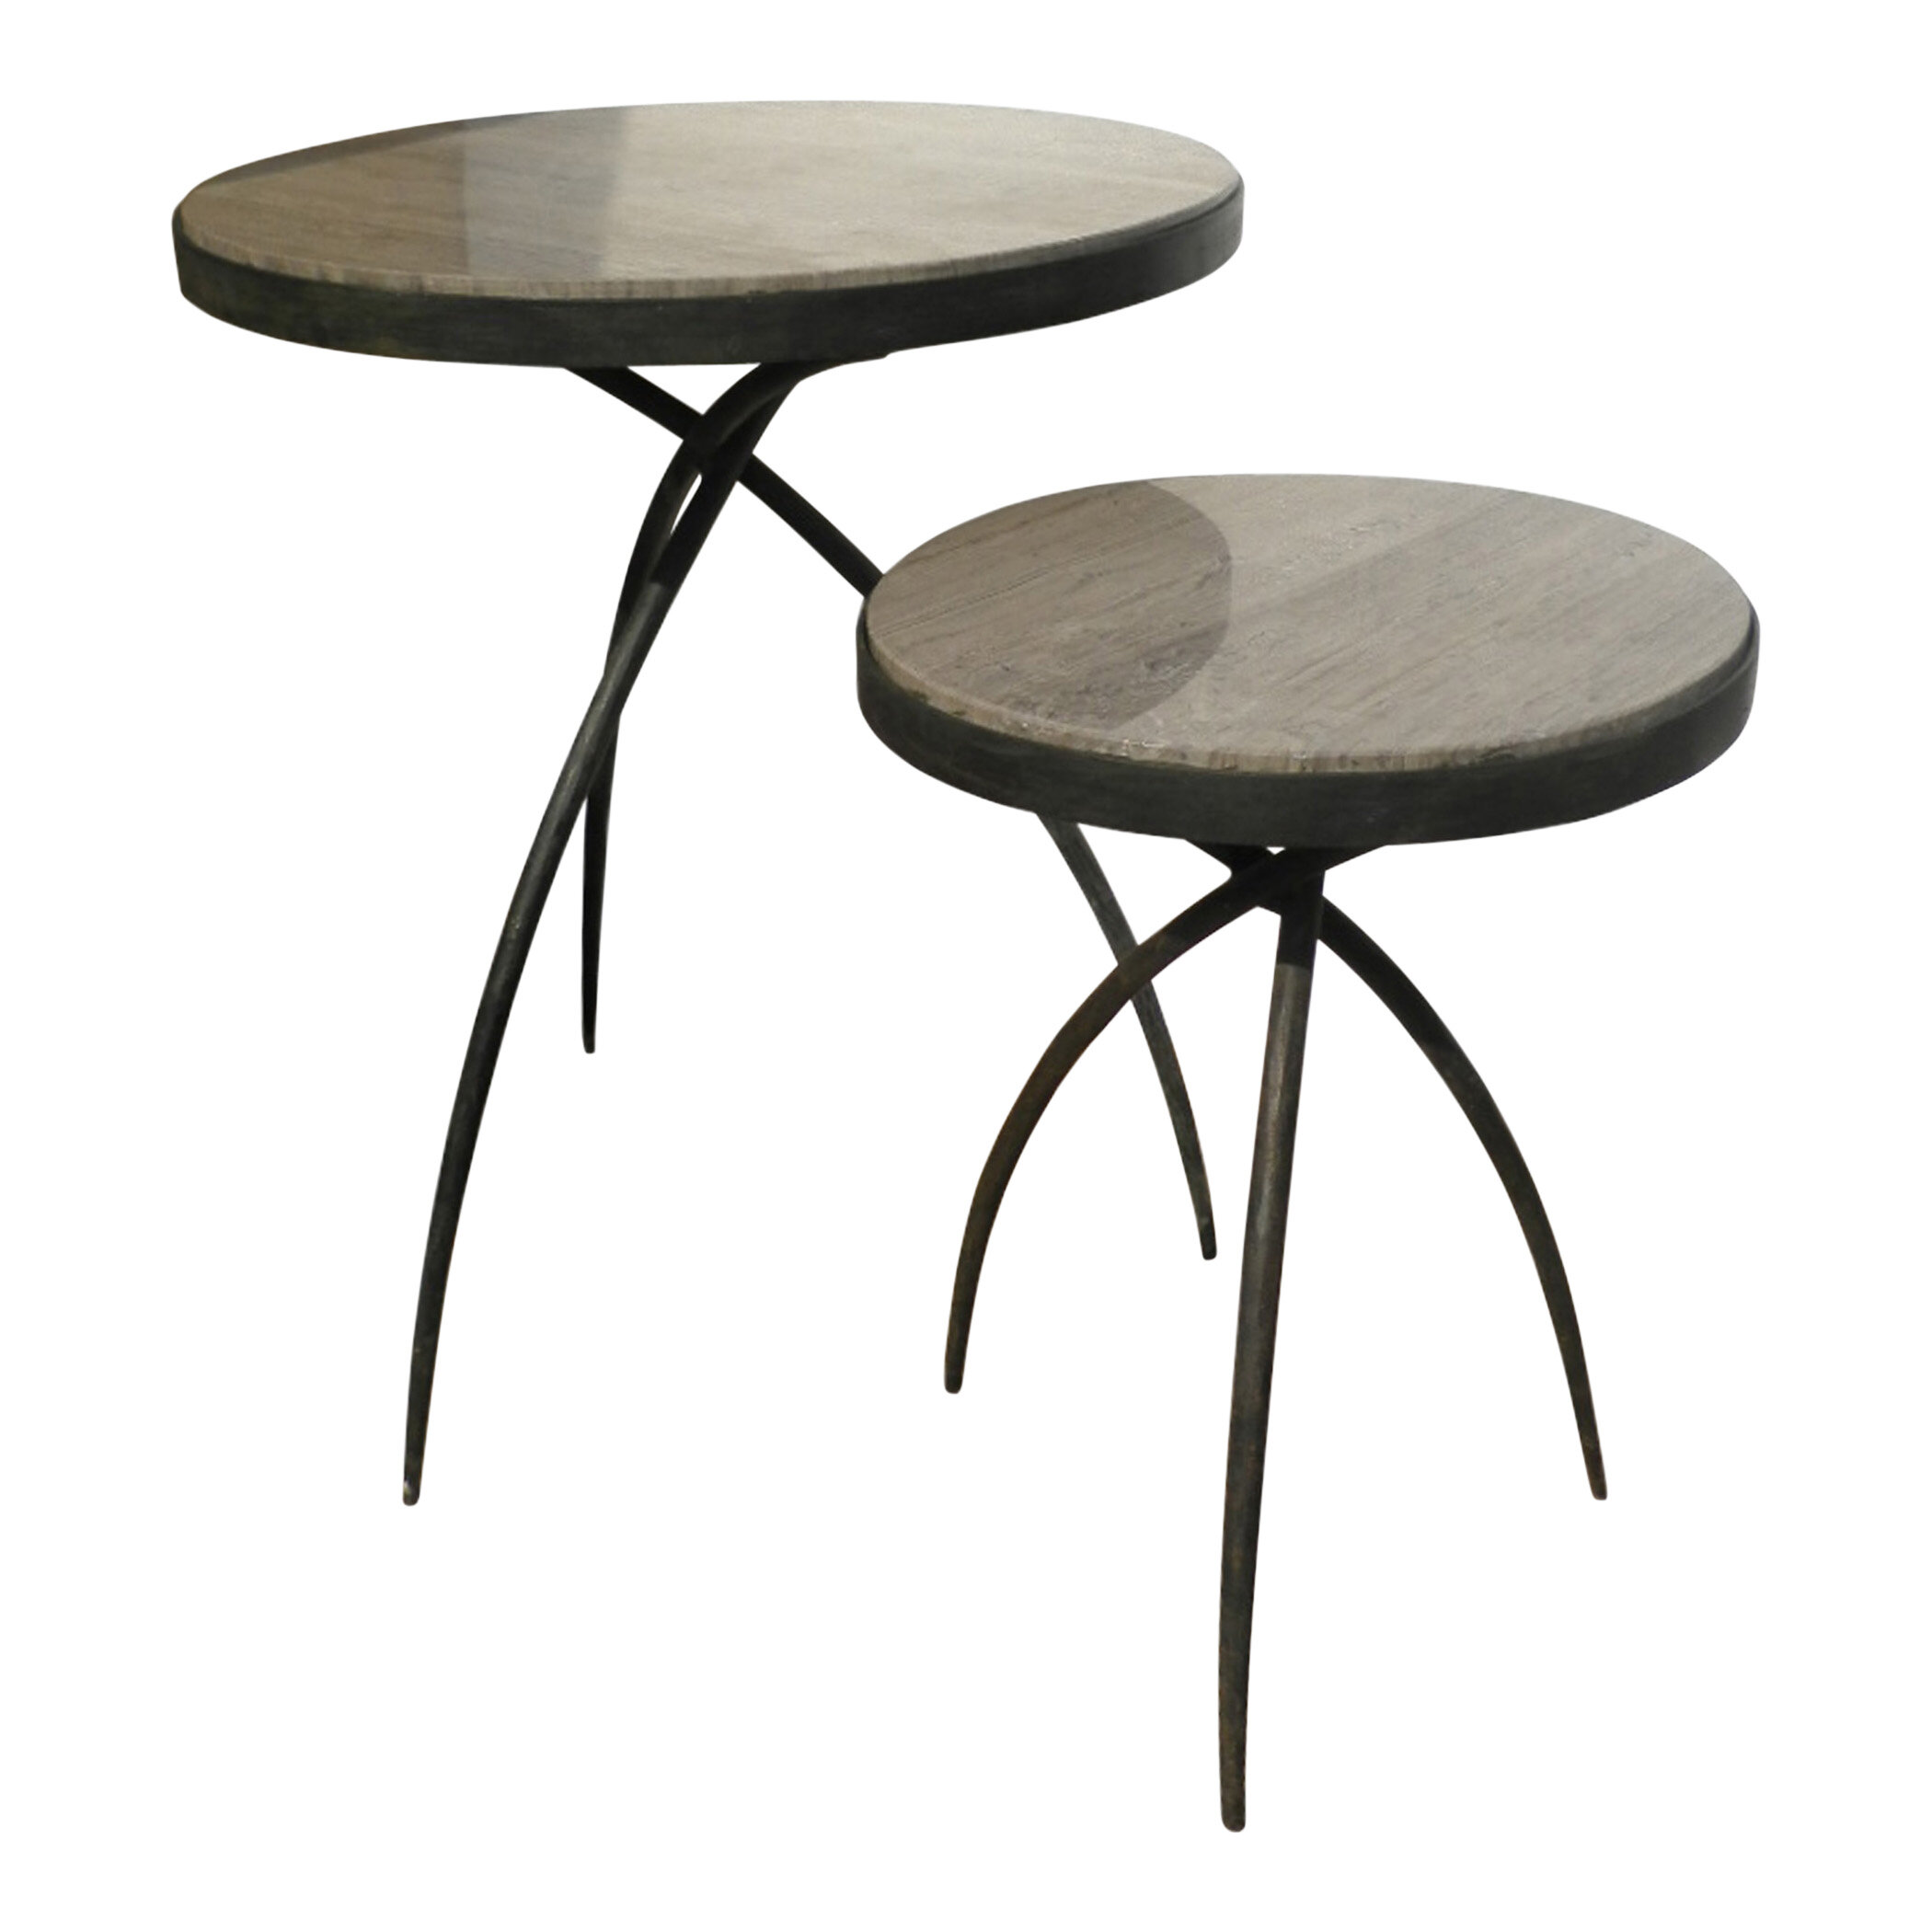 Genial Studio A Tripod End Table With Marble Top | Wayfair